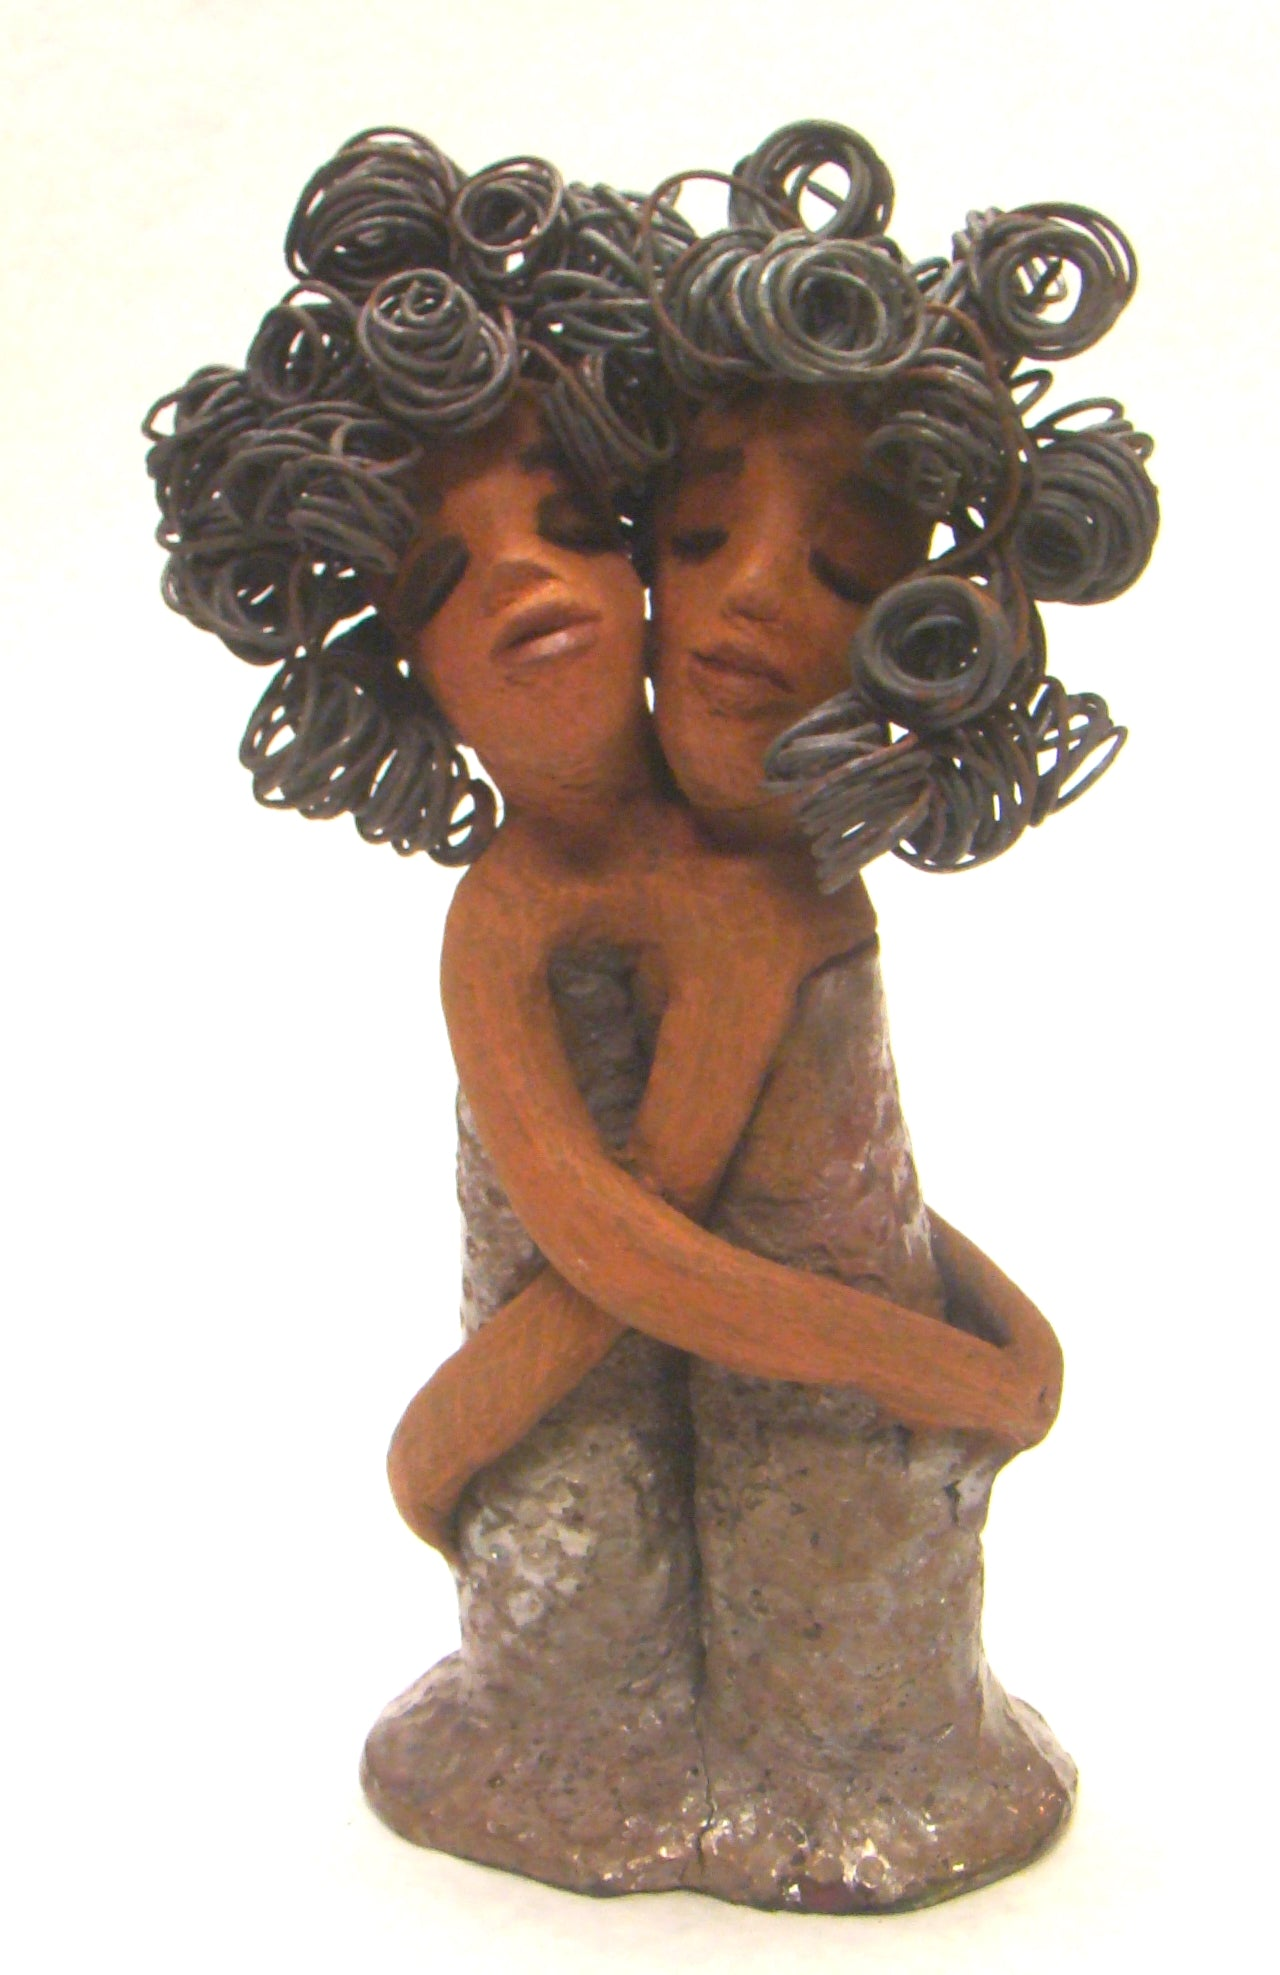 "Sister Love stands 11"" x 5"" x 3"" and weighs 2.06 lbs. Combined they have over 45 feet of curled 16 gauge wire hair. The dresses are textured with an antique copper glaze. They have lovely honey brown complexions.  Sister Love is inseparable! Give them a special place in your home. Free Shipping!"